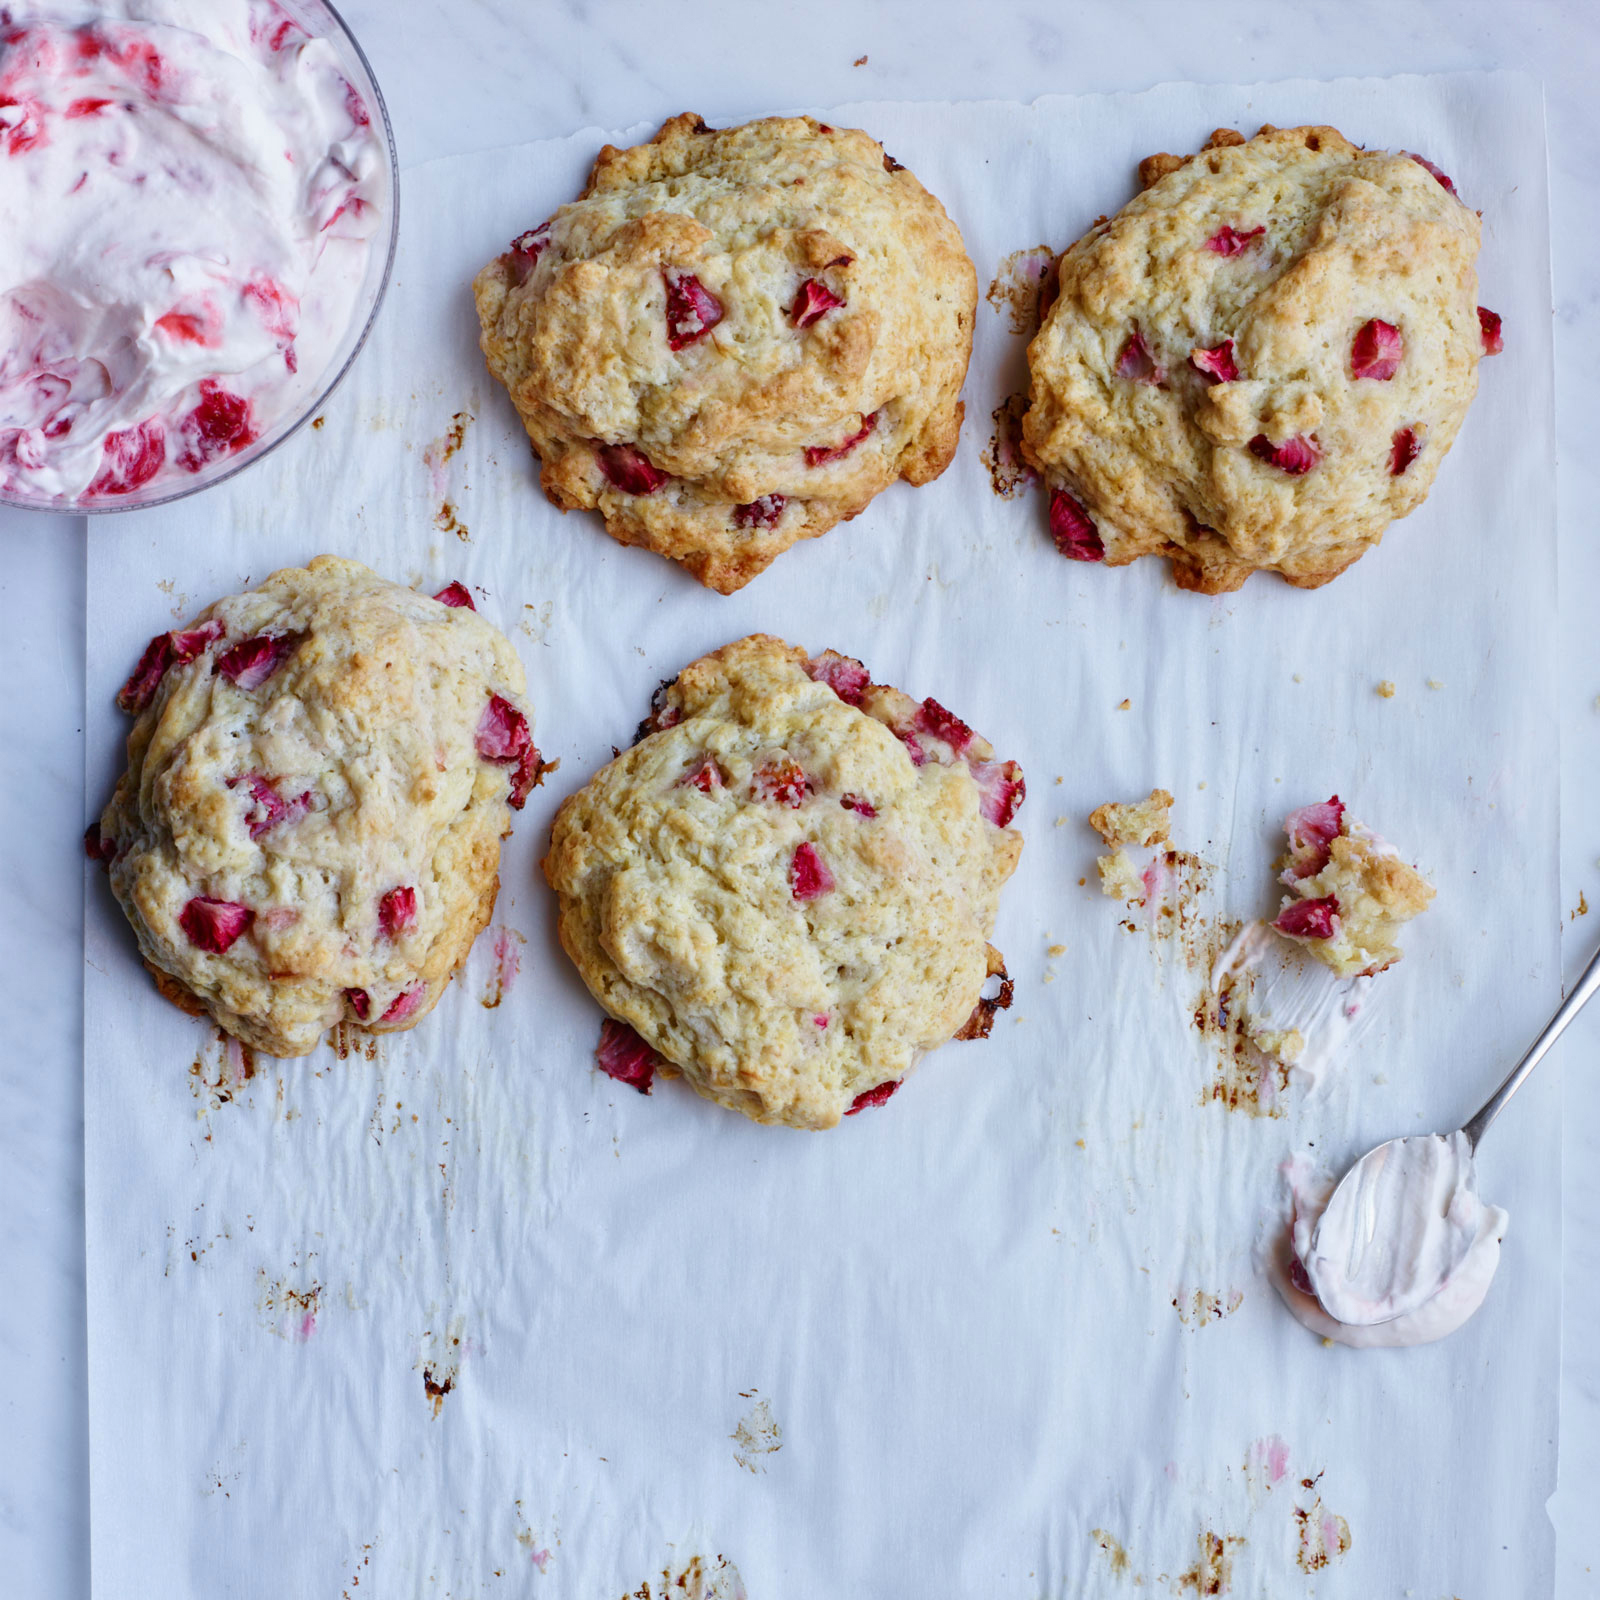 Strawberry Creme Fraiche Biscuits